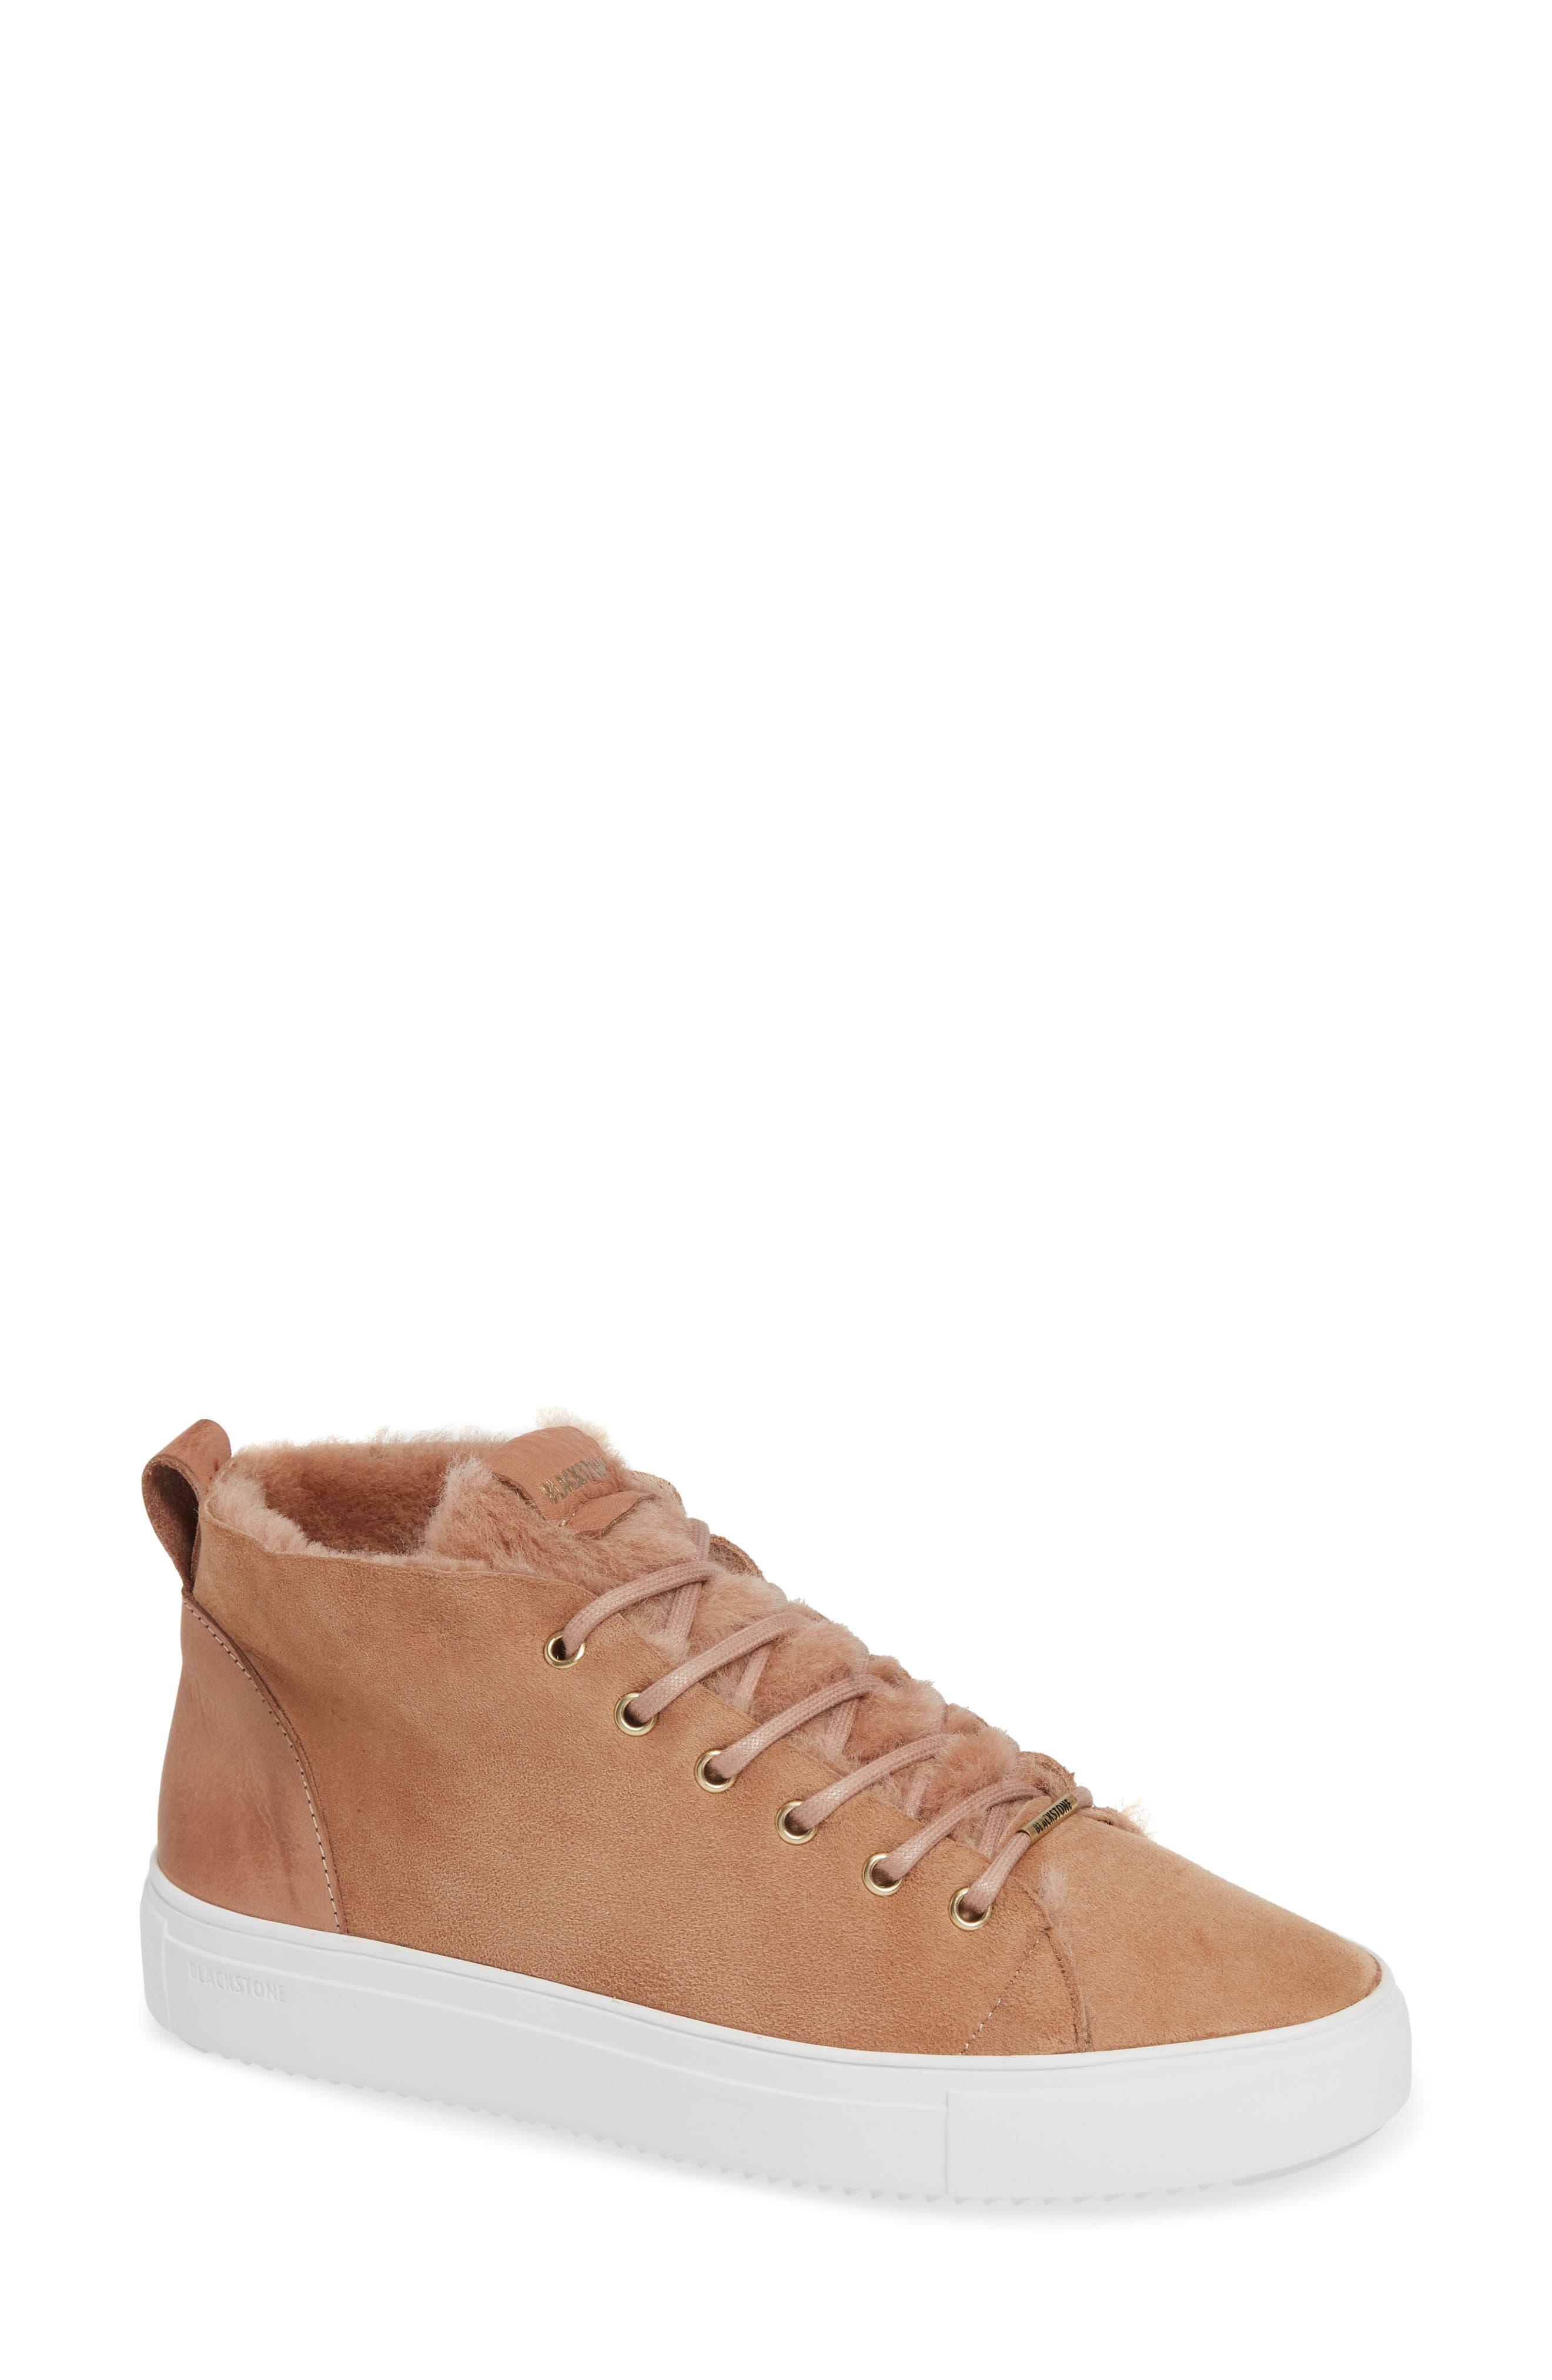 Ql48 Genuine Shearling Lined High Top Sneaker